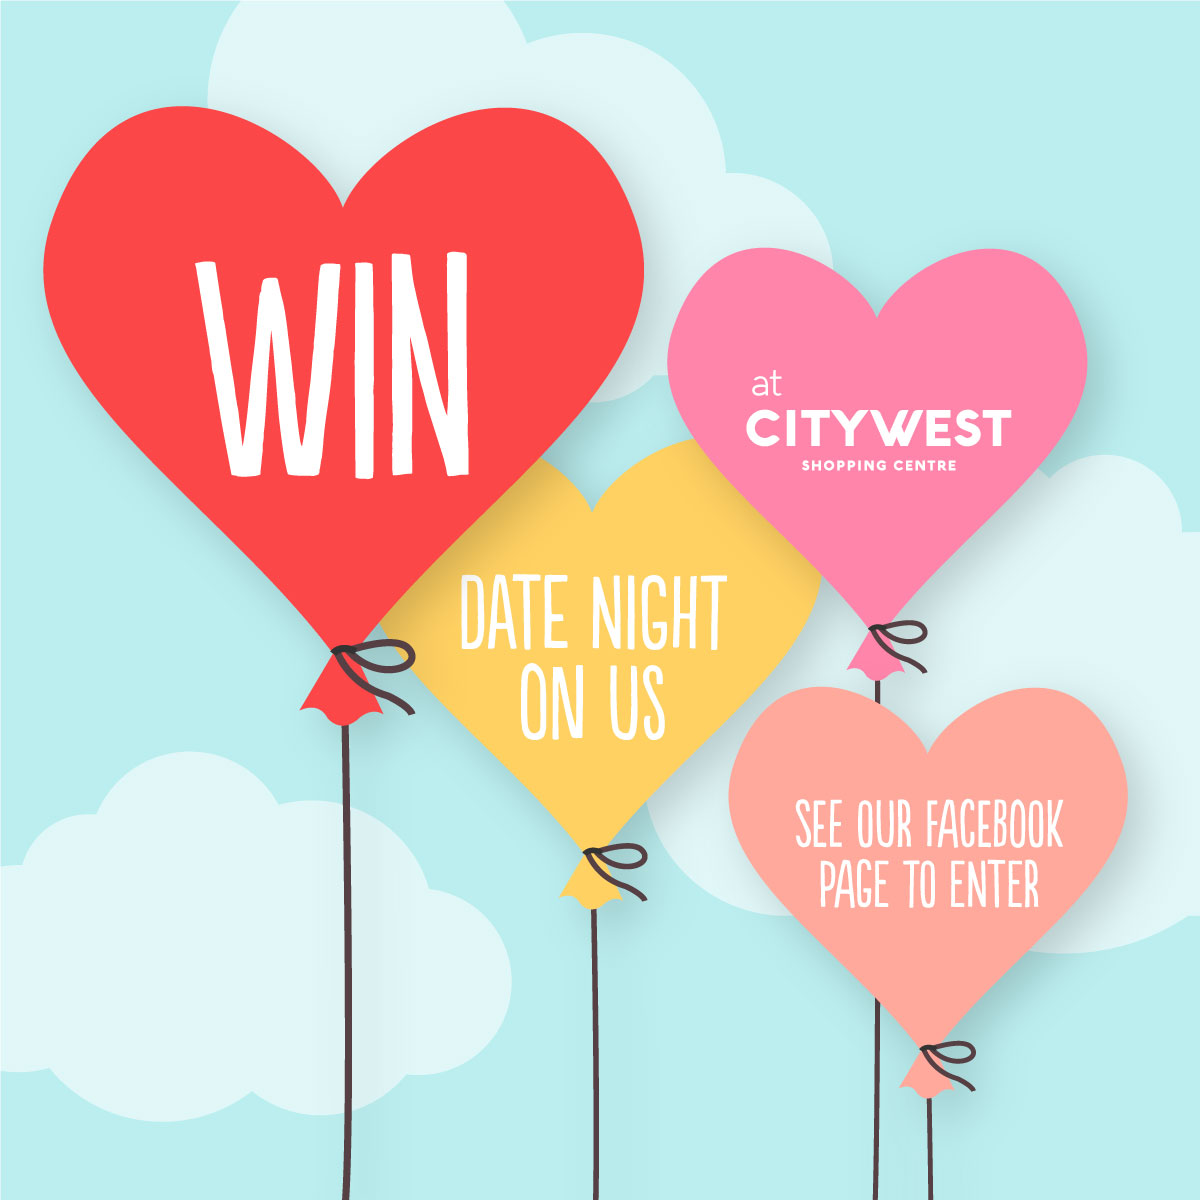 Win Date Night On Us!